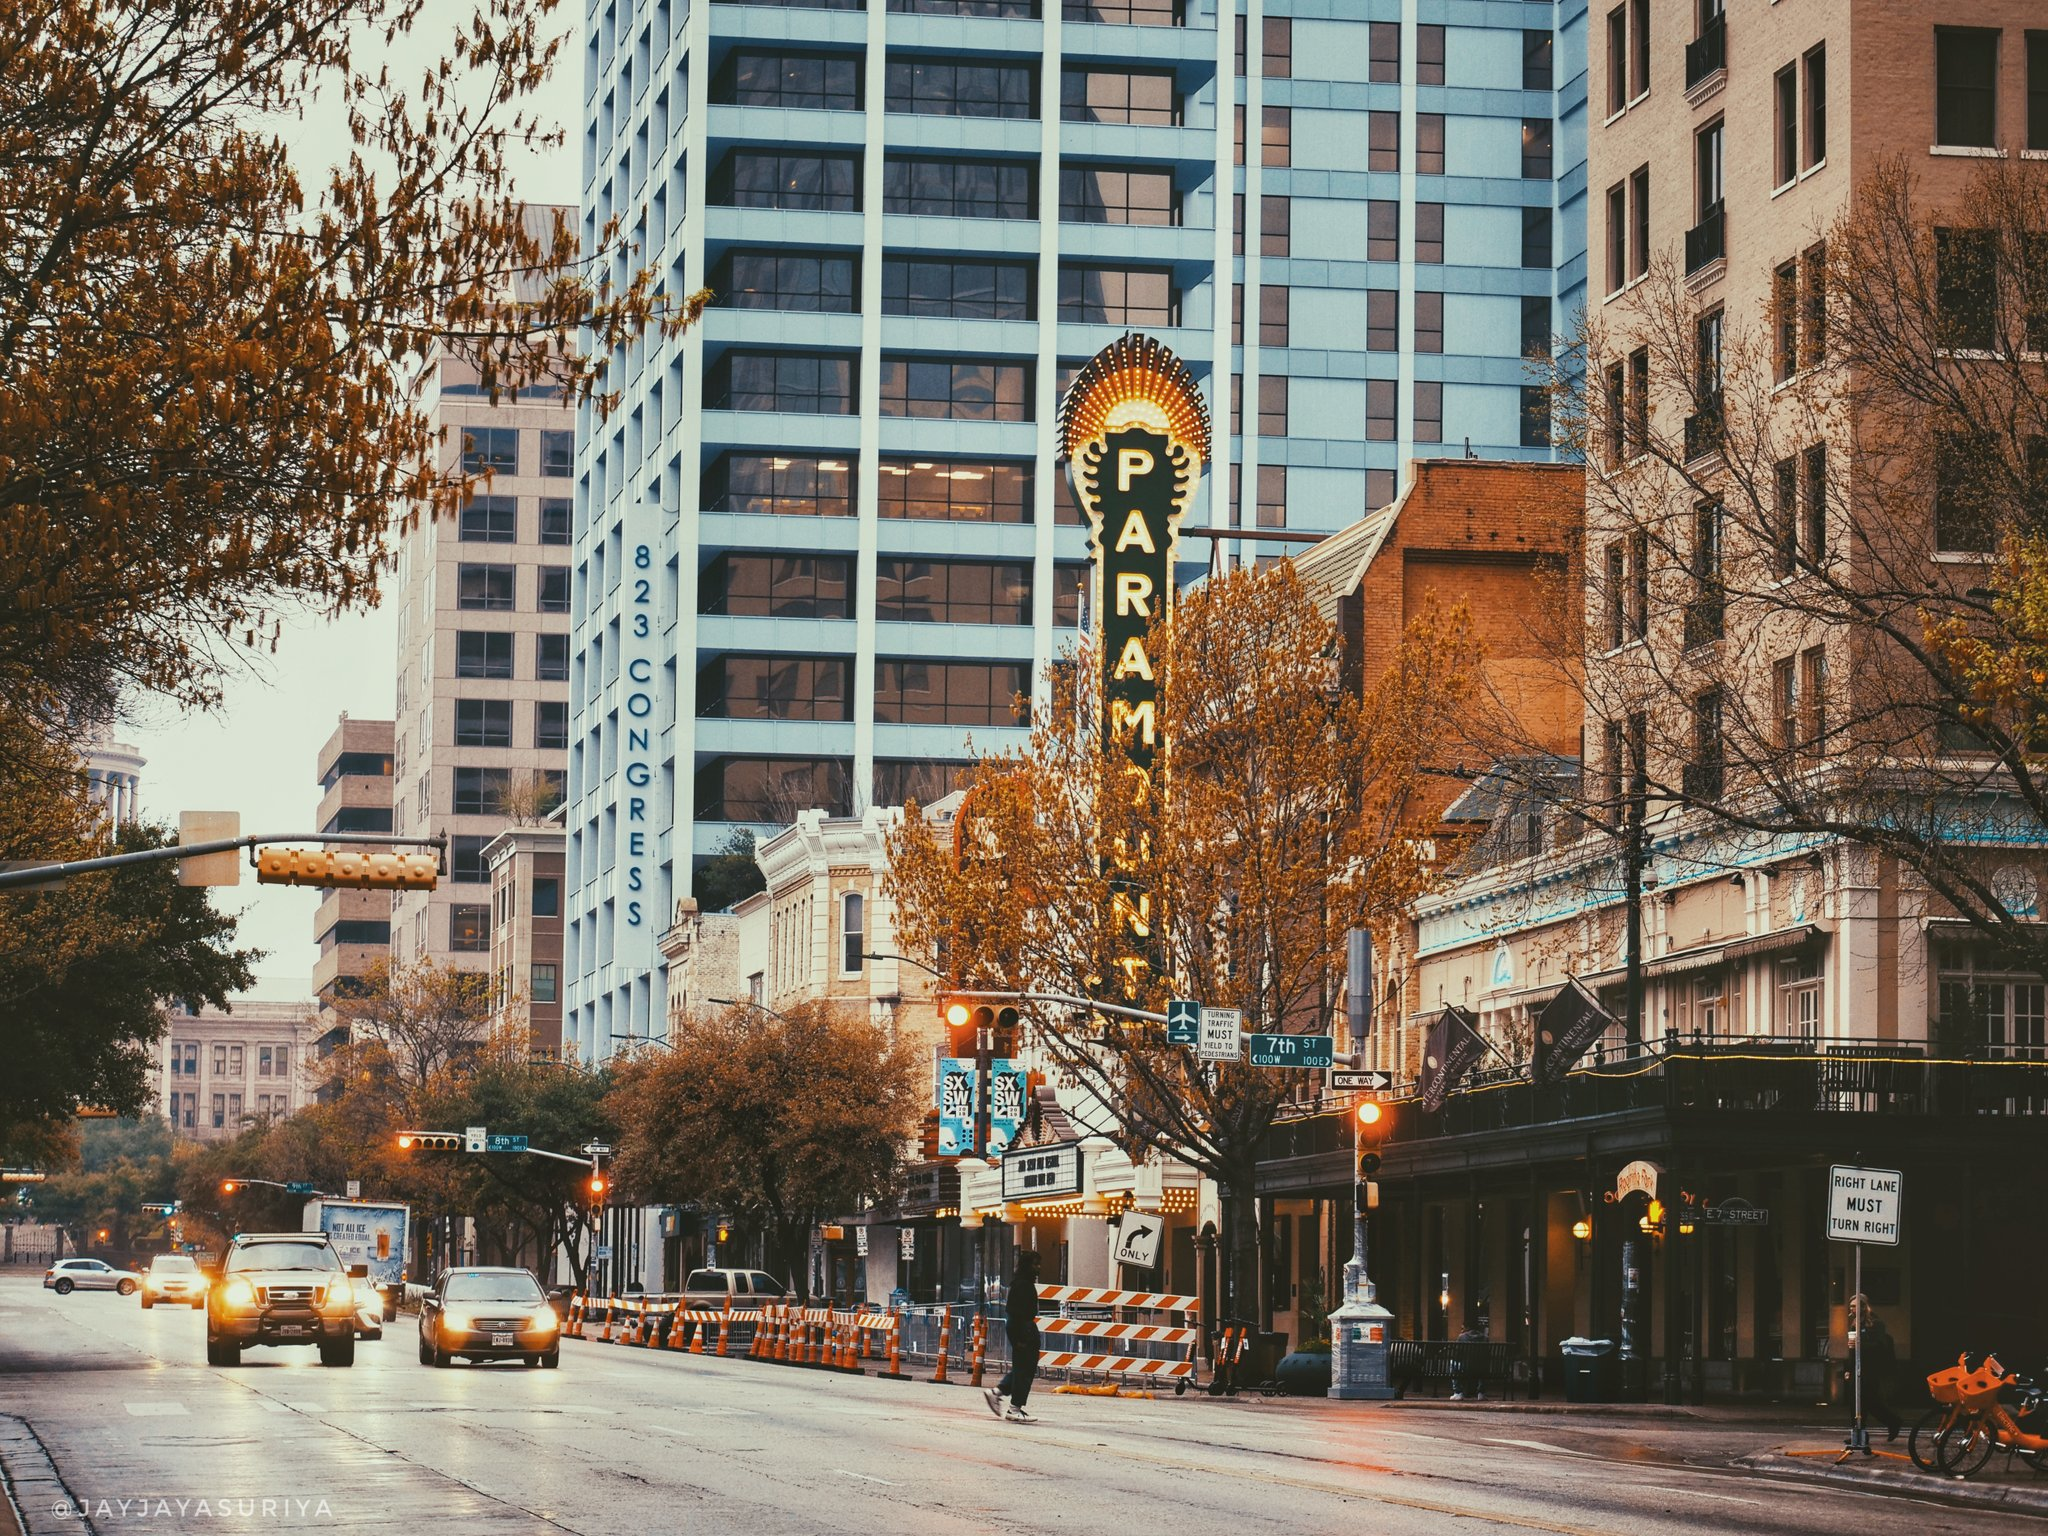 This place is about to get flooded with celebrities and talented folks from all around the world!!!  @ParamountAustin @SXSW  . . #austintexas #paramounttheatre #atx #film #sxsw #sxswfilm #filmfestival #sxsw2019 https://t.co/BTHuKlxGPu